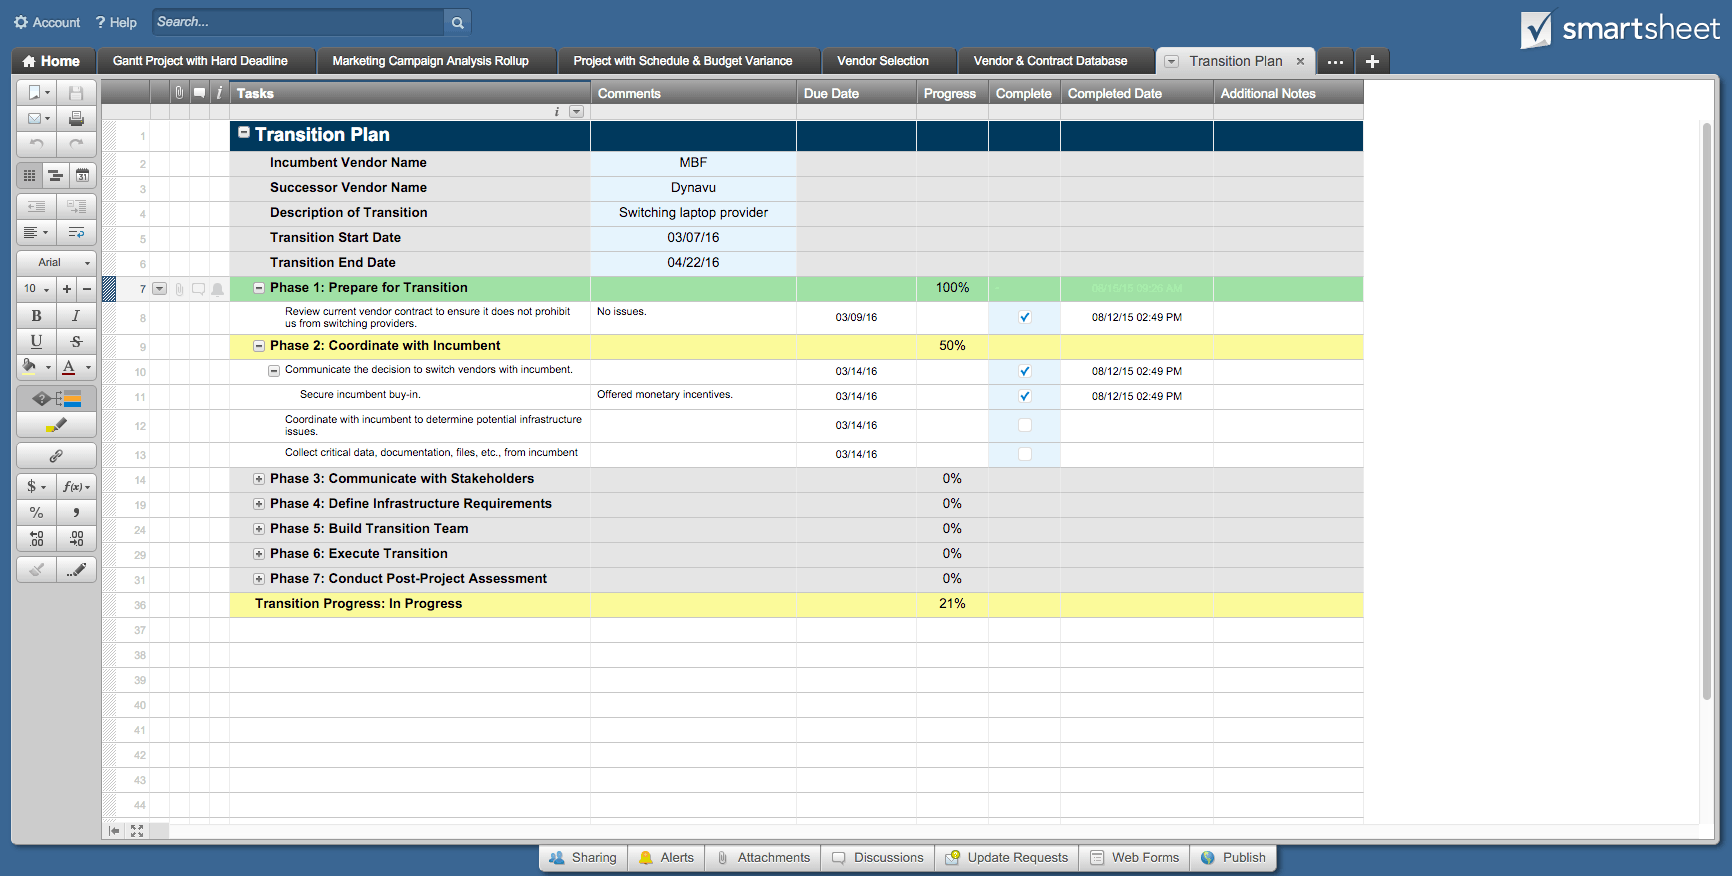 Vendor contract management smartsheet for Contract transition plan template